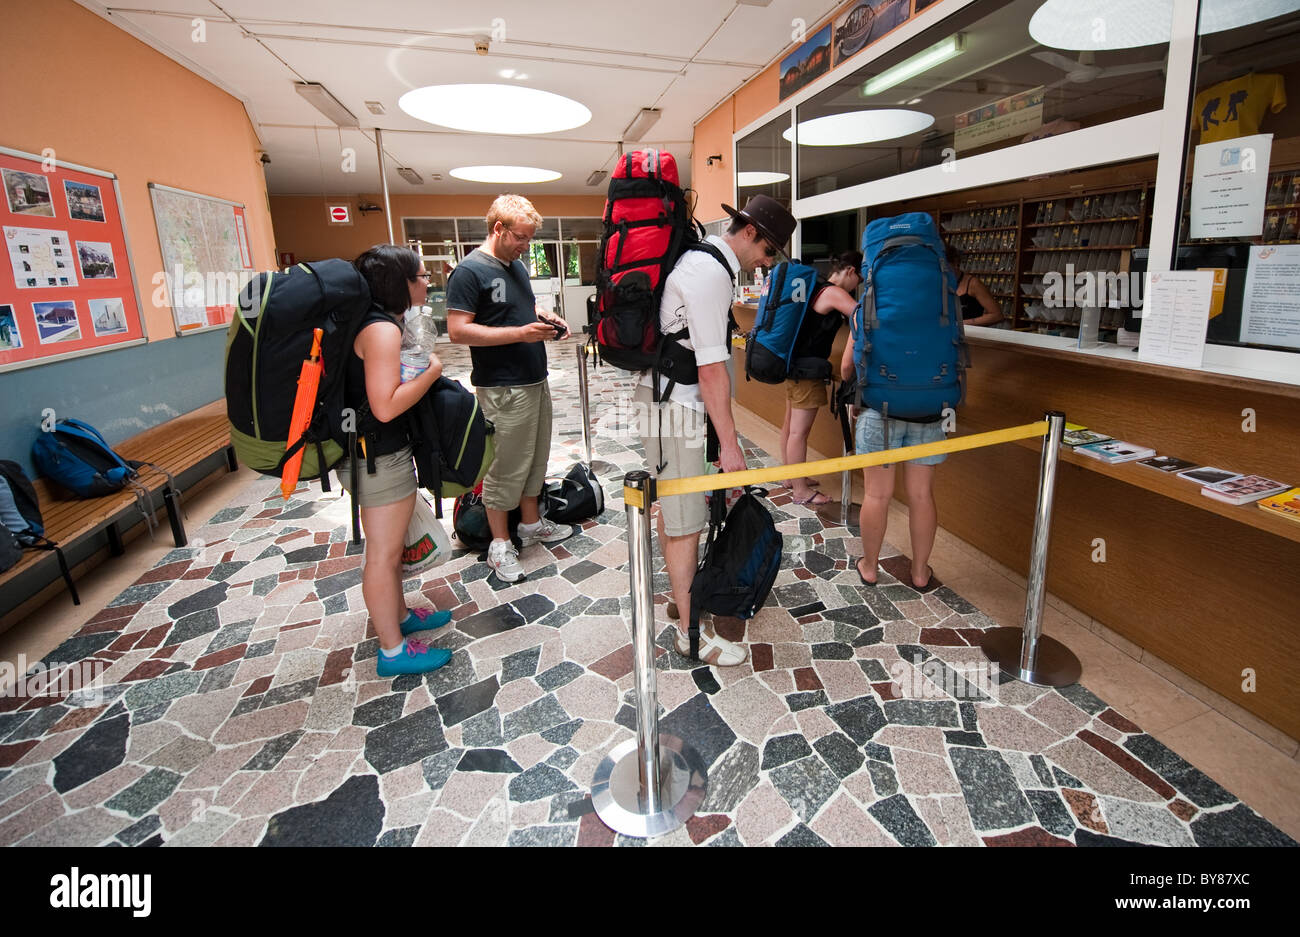 Backpackers check in at city Hostel, Milan, Italy - Stock Image